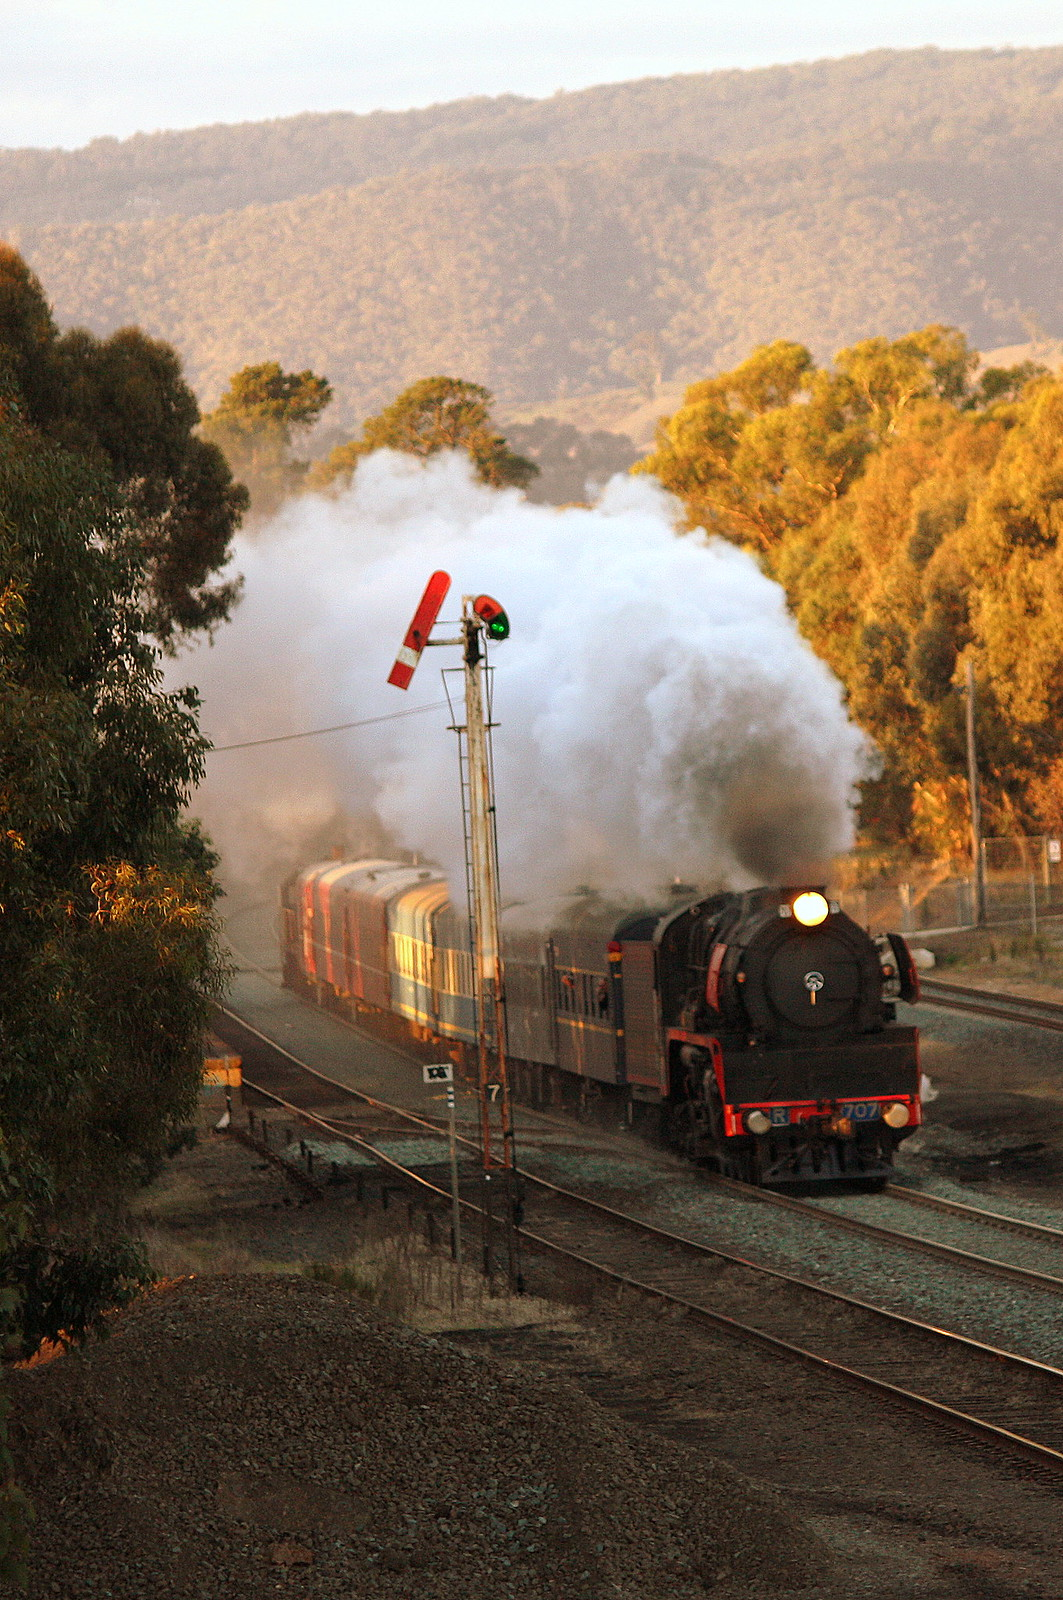 R707 at Broadford by LC501